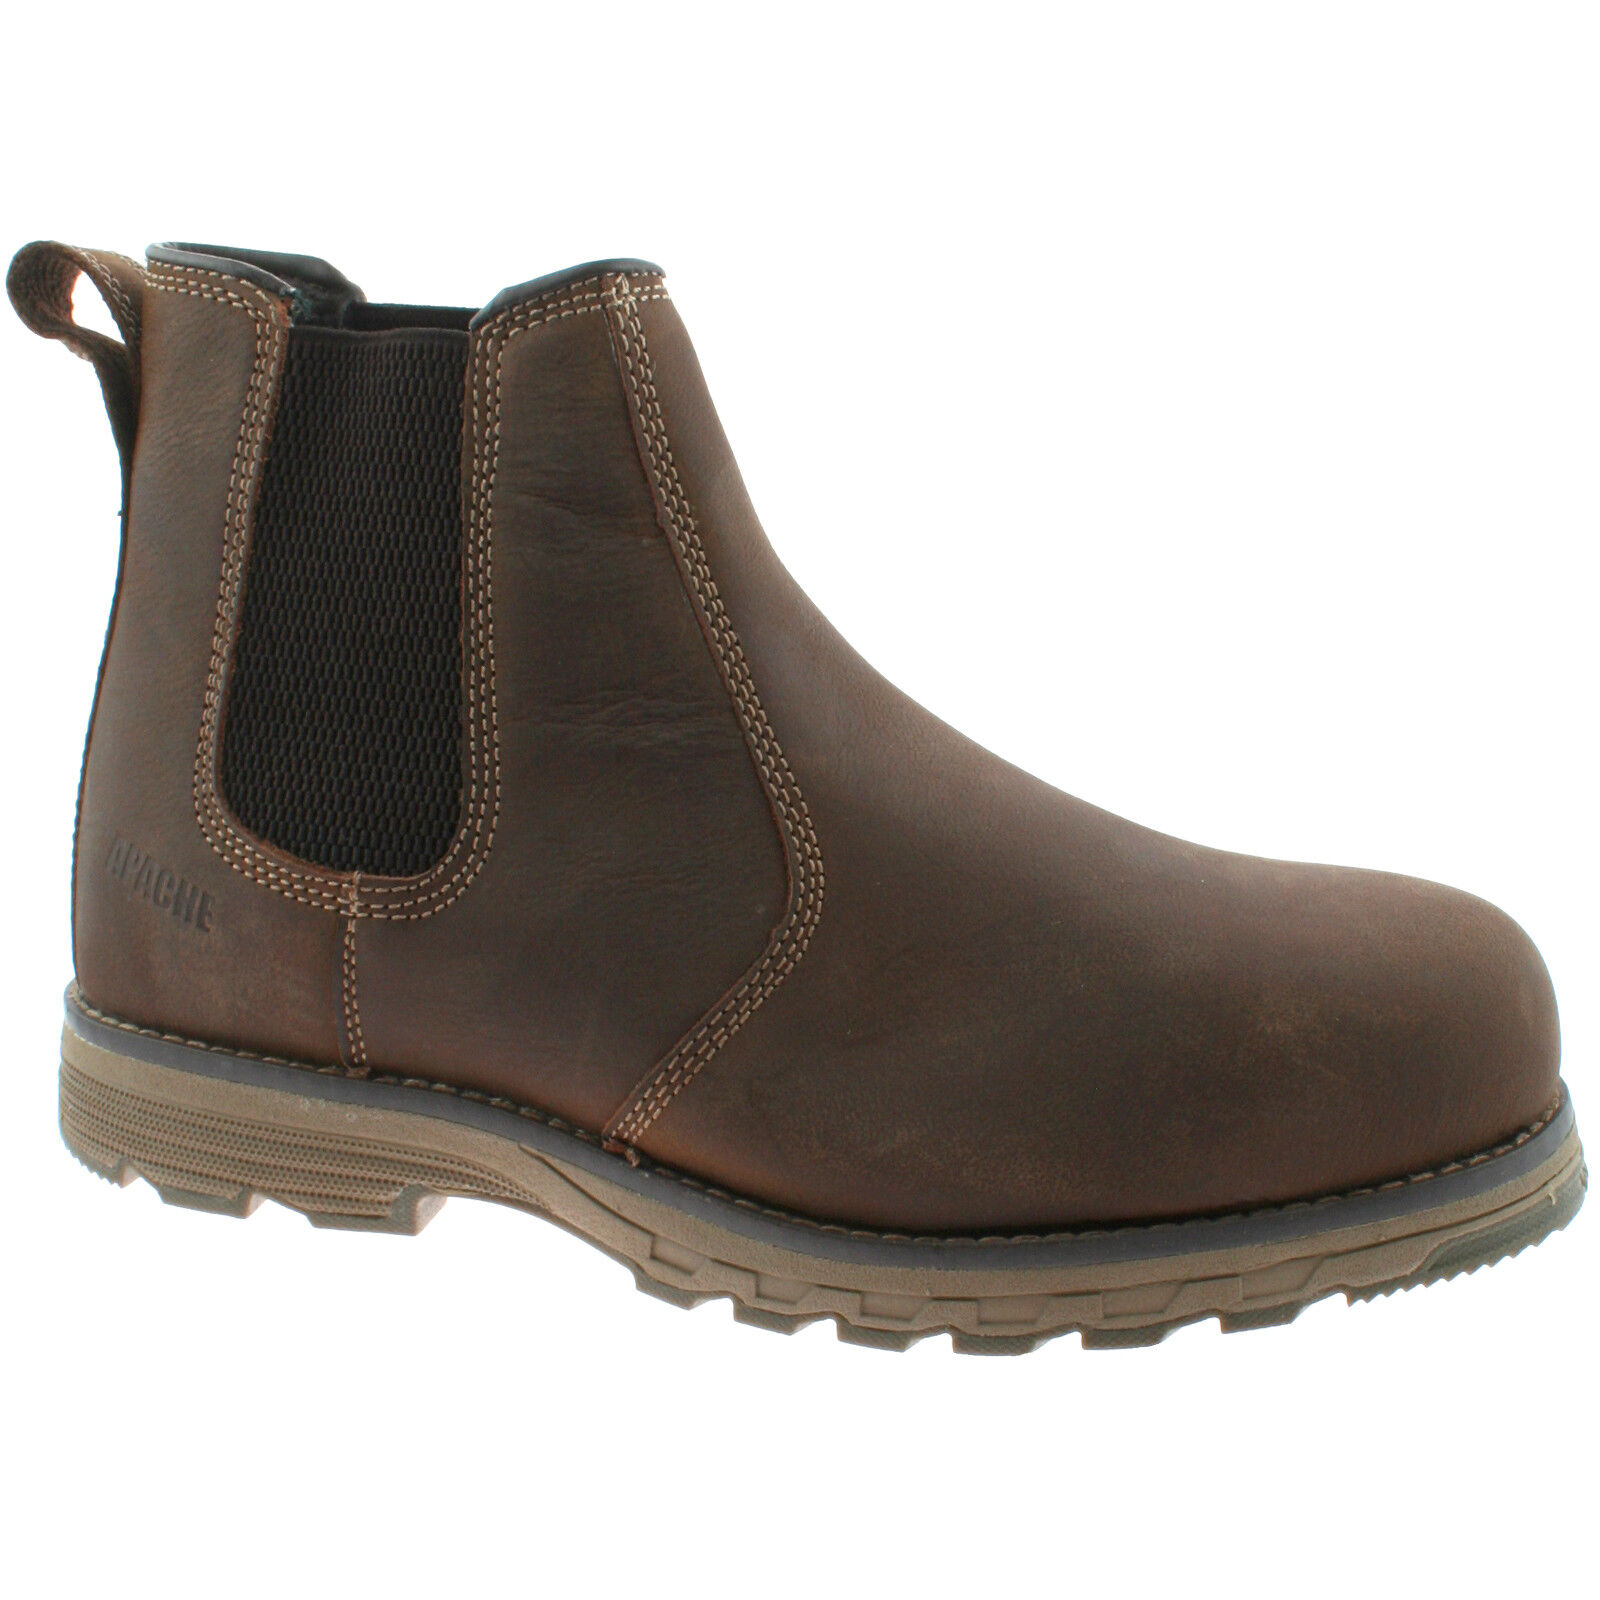 MENS APACHE FLYWEIGHT SAFETY BROWN NUBUCK LEATHER WATER RESISTANT DEALER BOOT